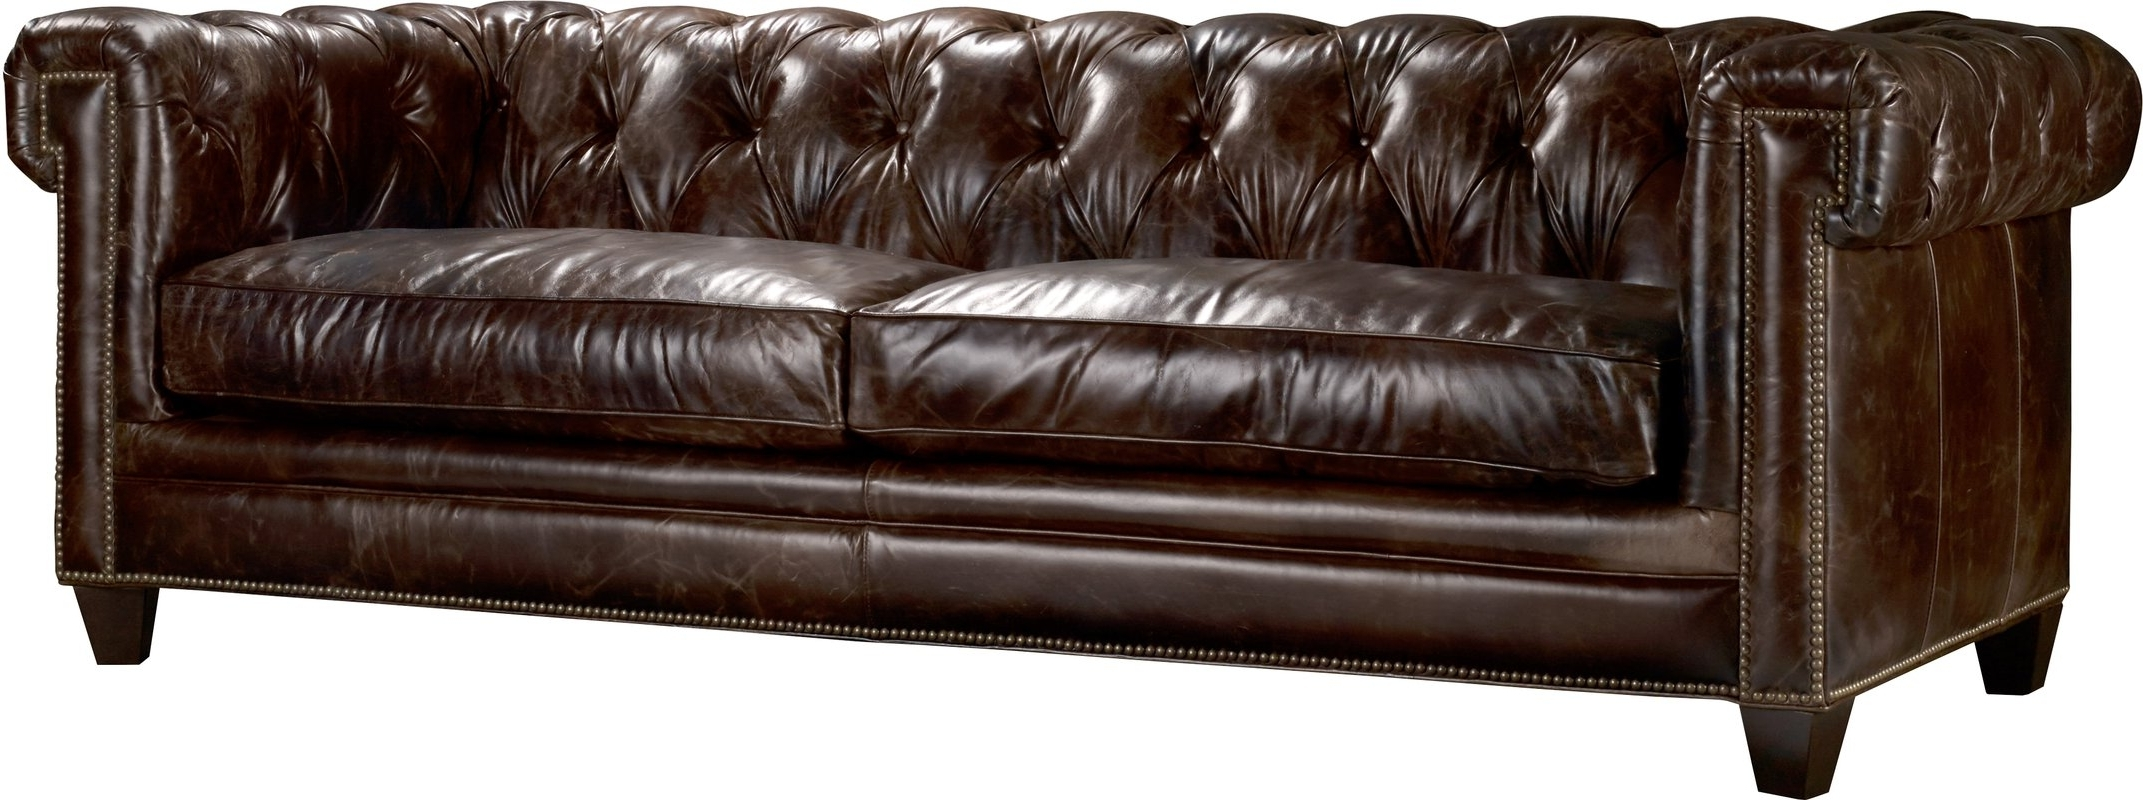 Chesterfield Sofas With 2017 Hooker Furniture Imperial Regal Stationary Leather Chesterfield (View 11 of 15)